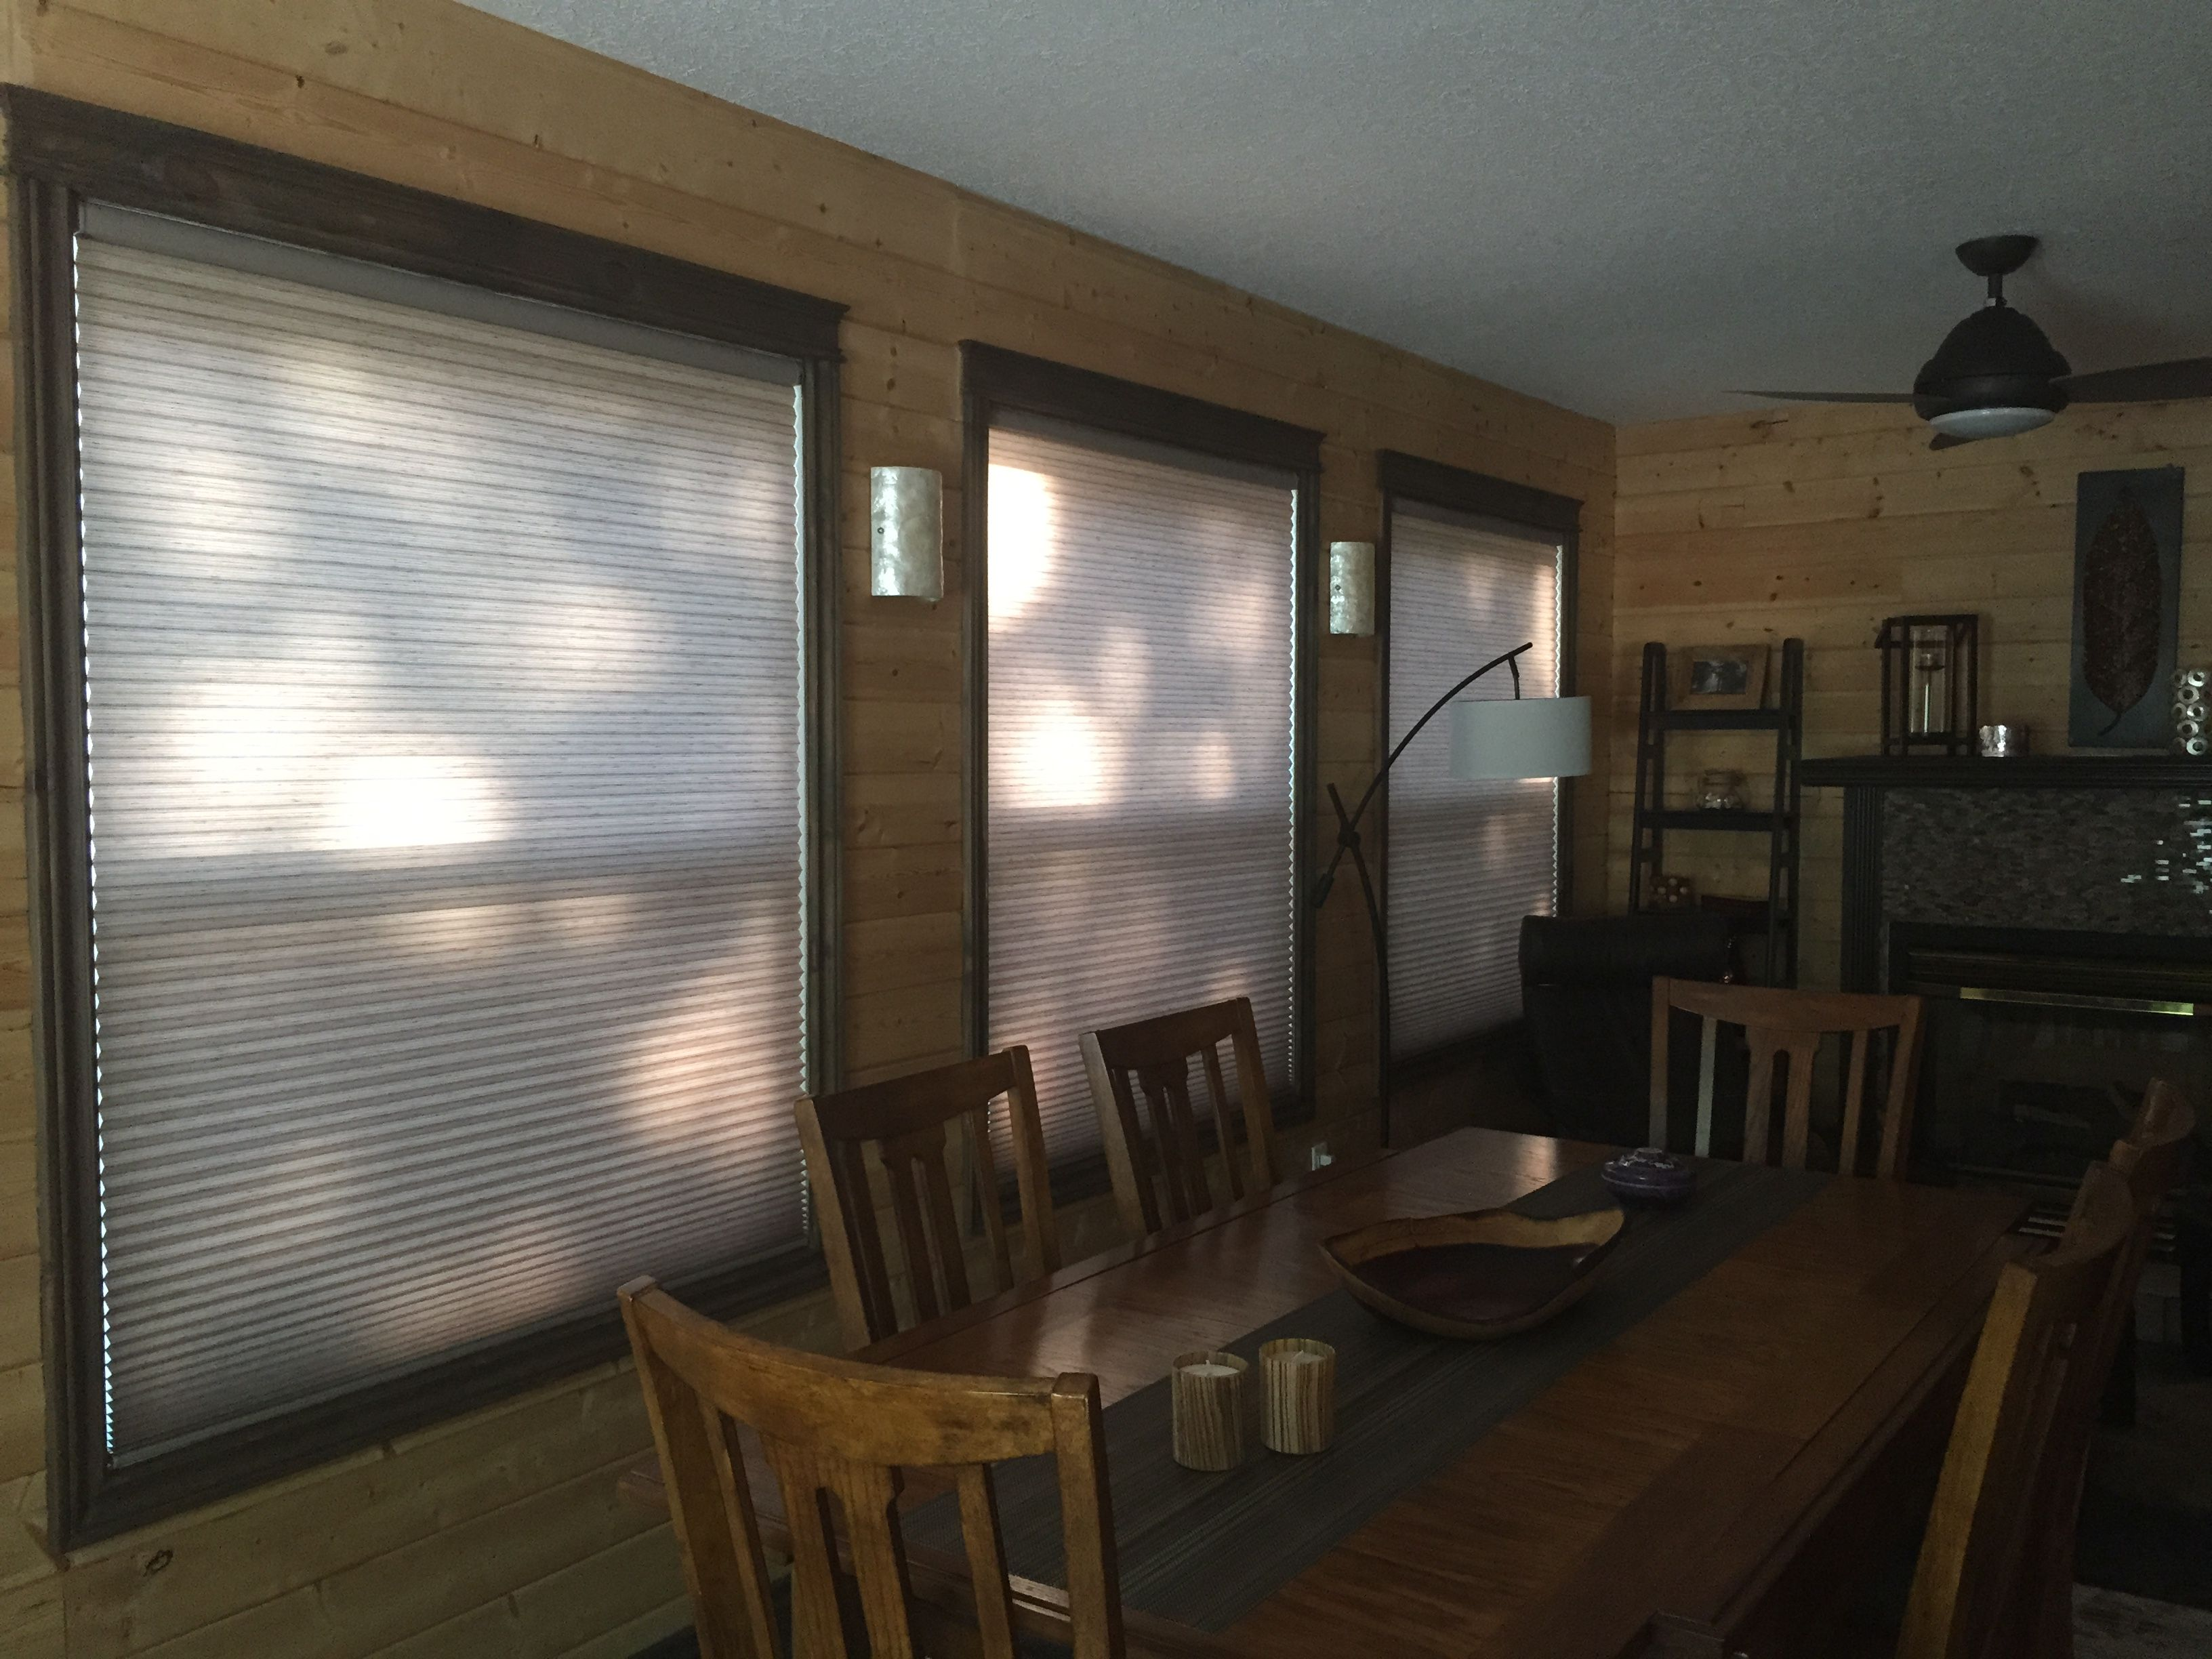 House window shade design  cabin with closed motorized hunter douglas honeycomb window shades